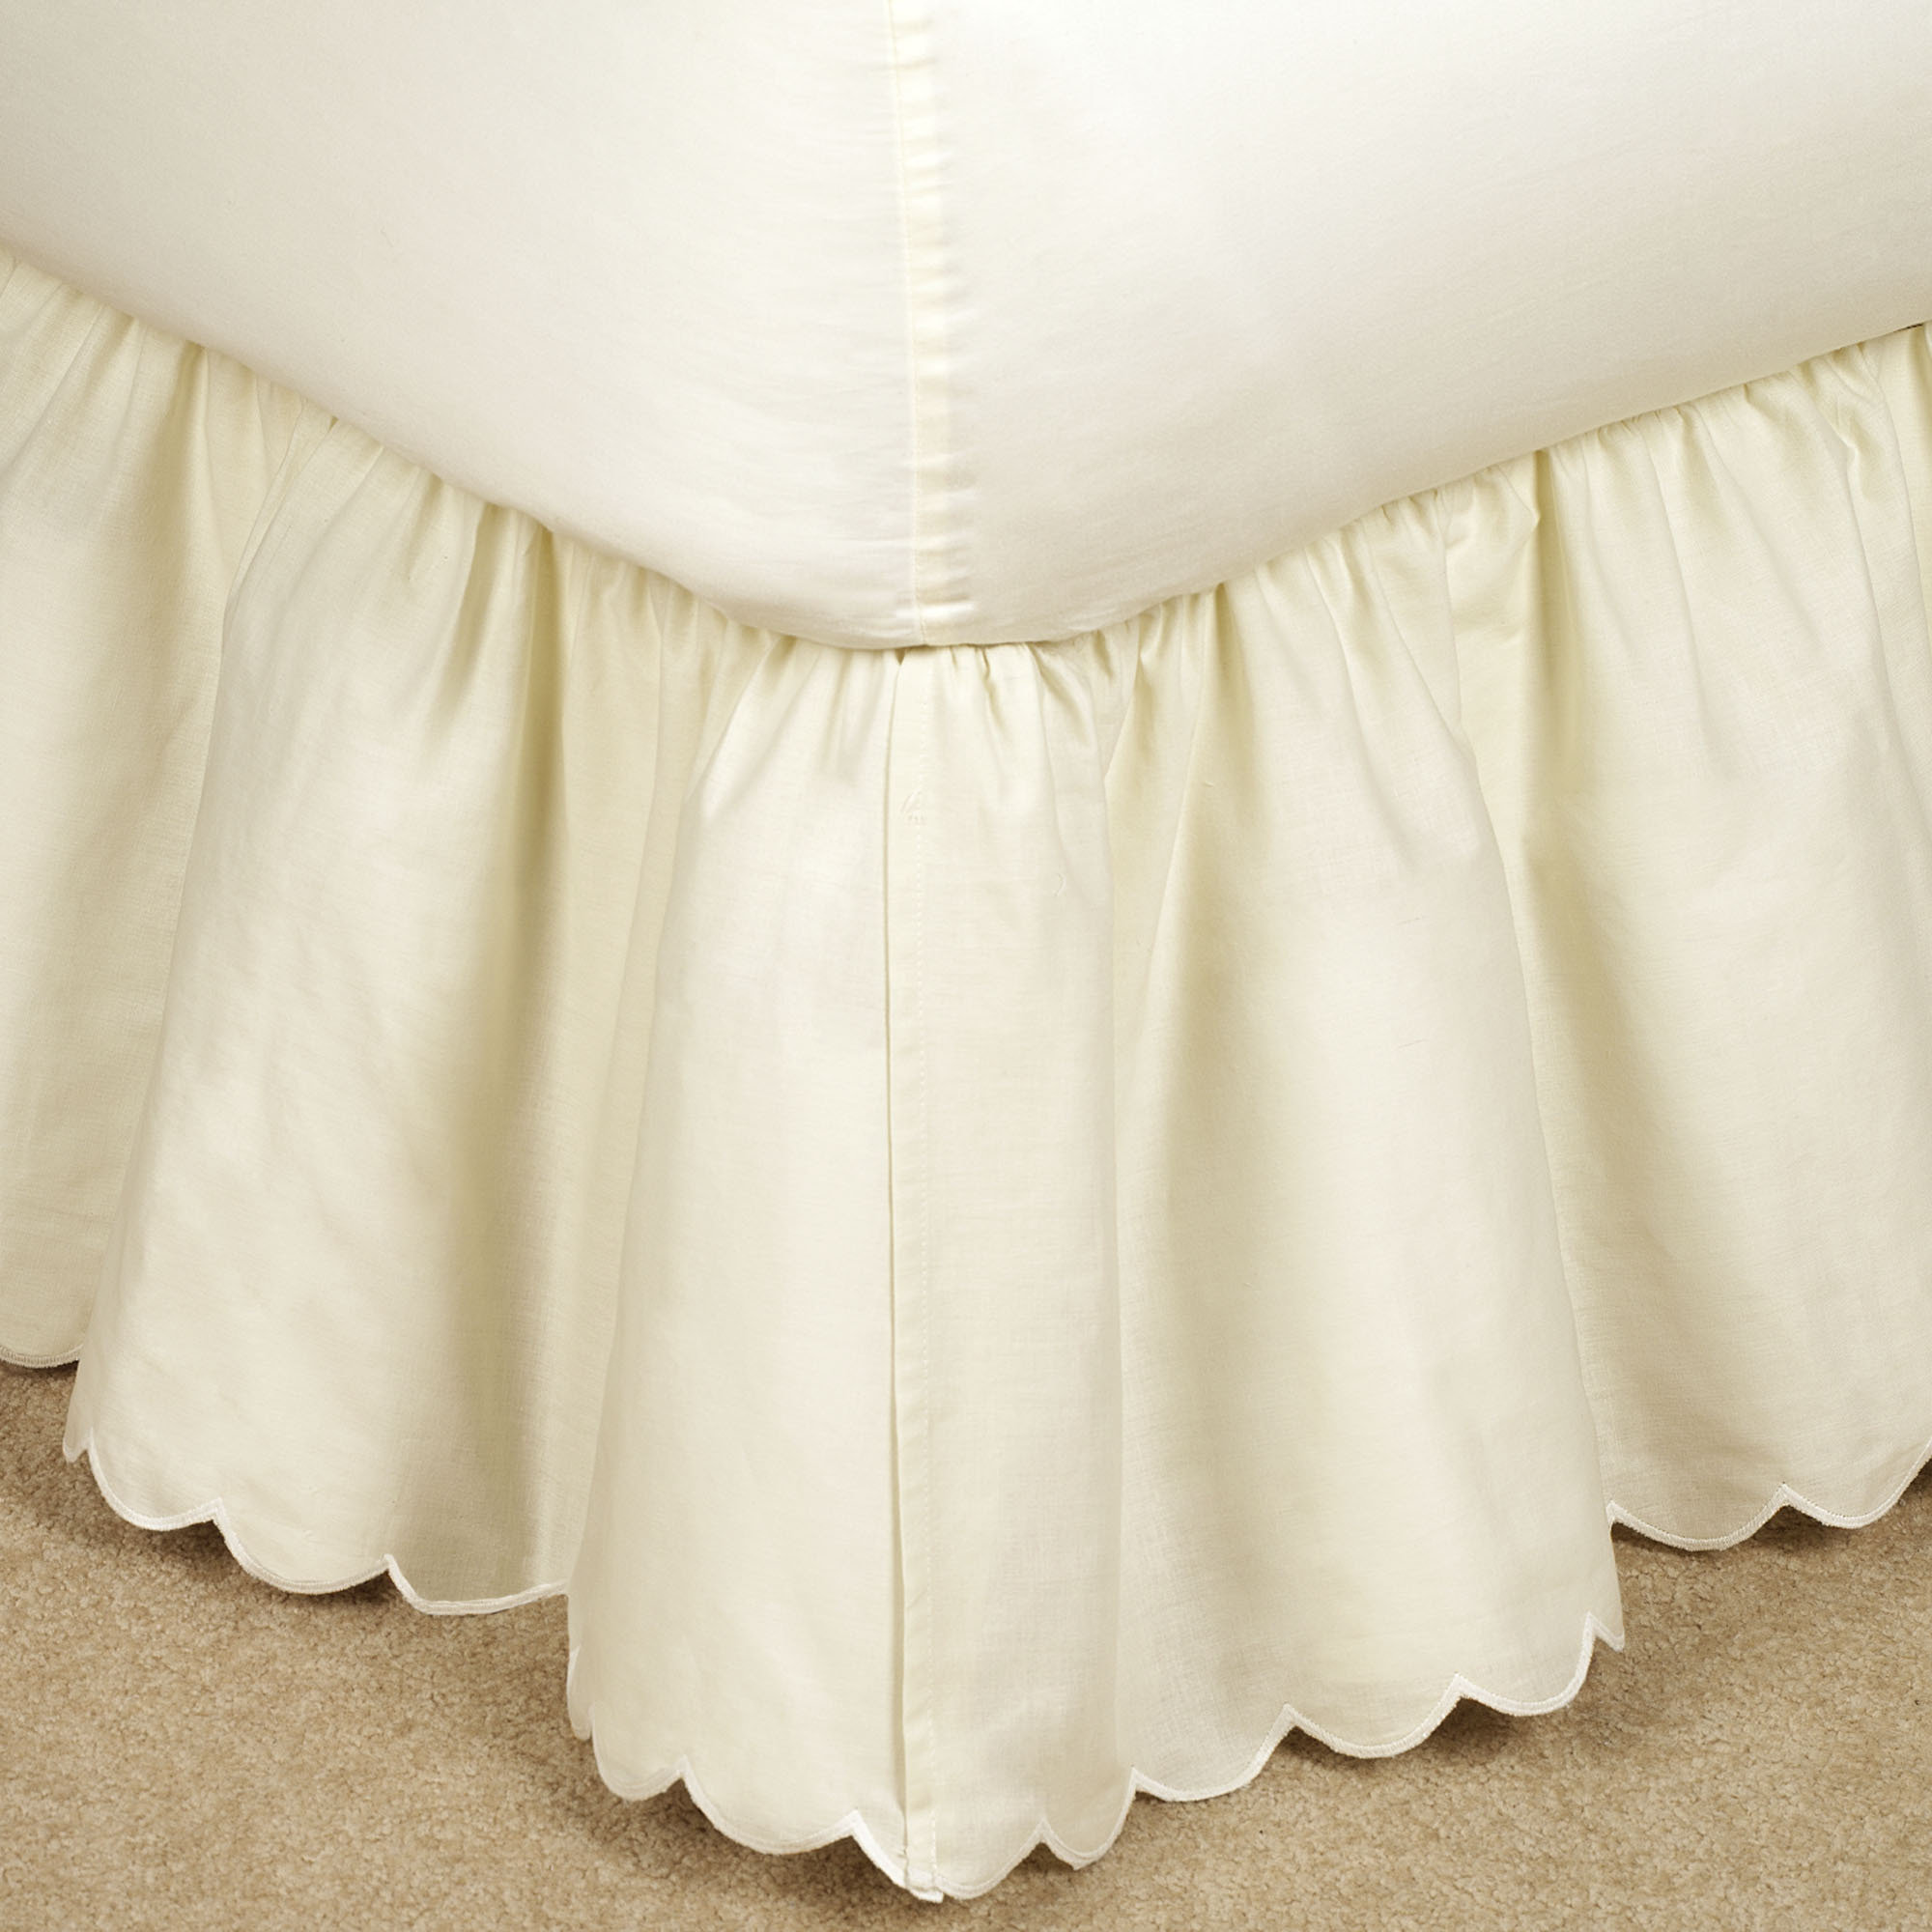 Best Bedskirts For Bedroom With Daybed Bedskirt